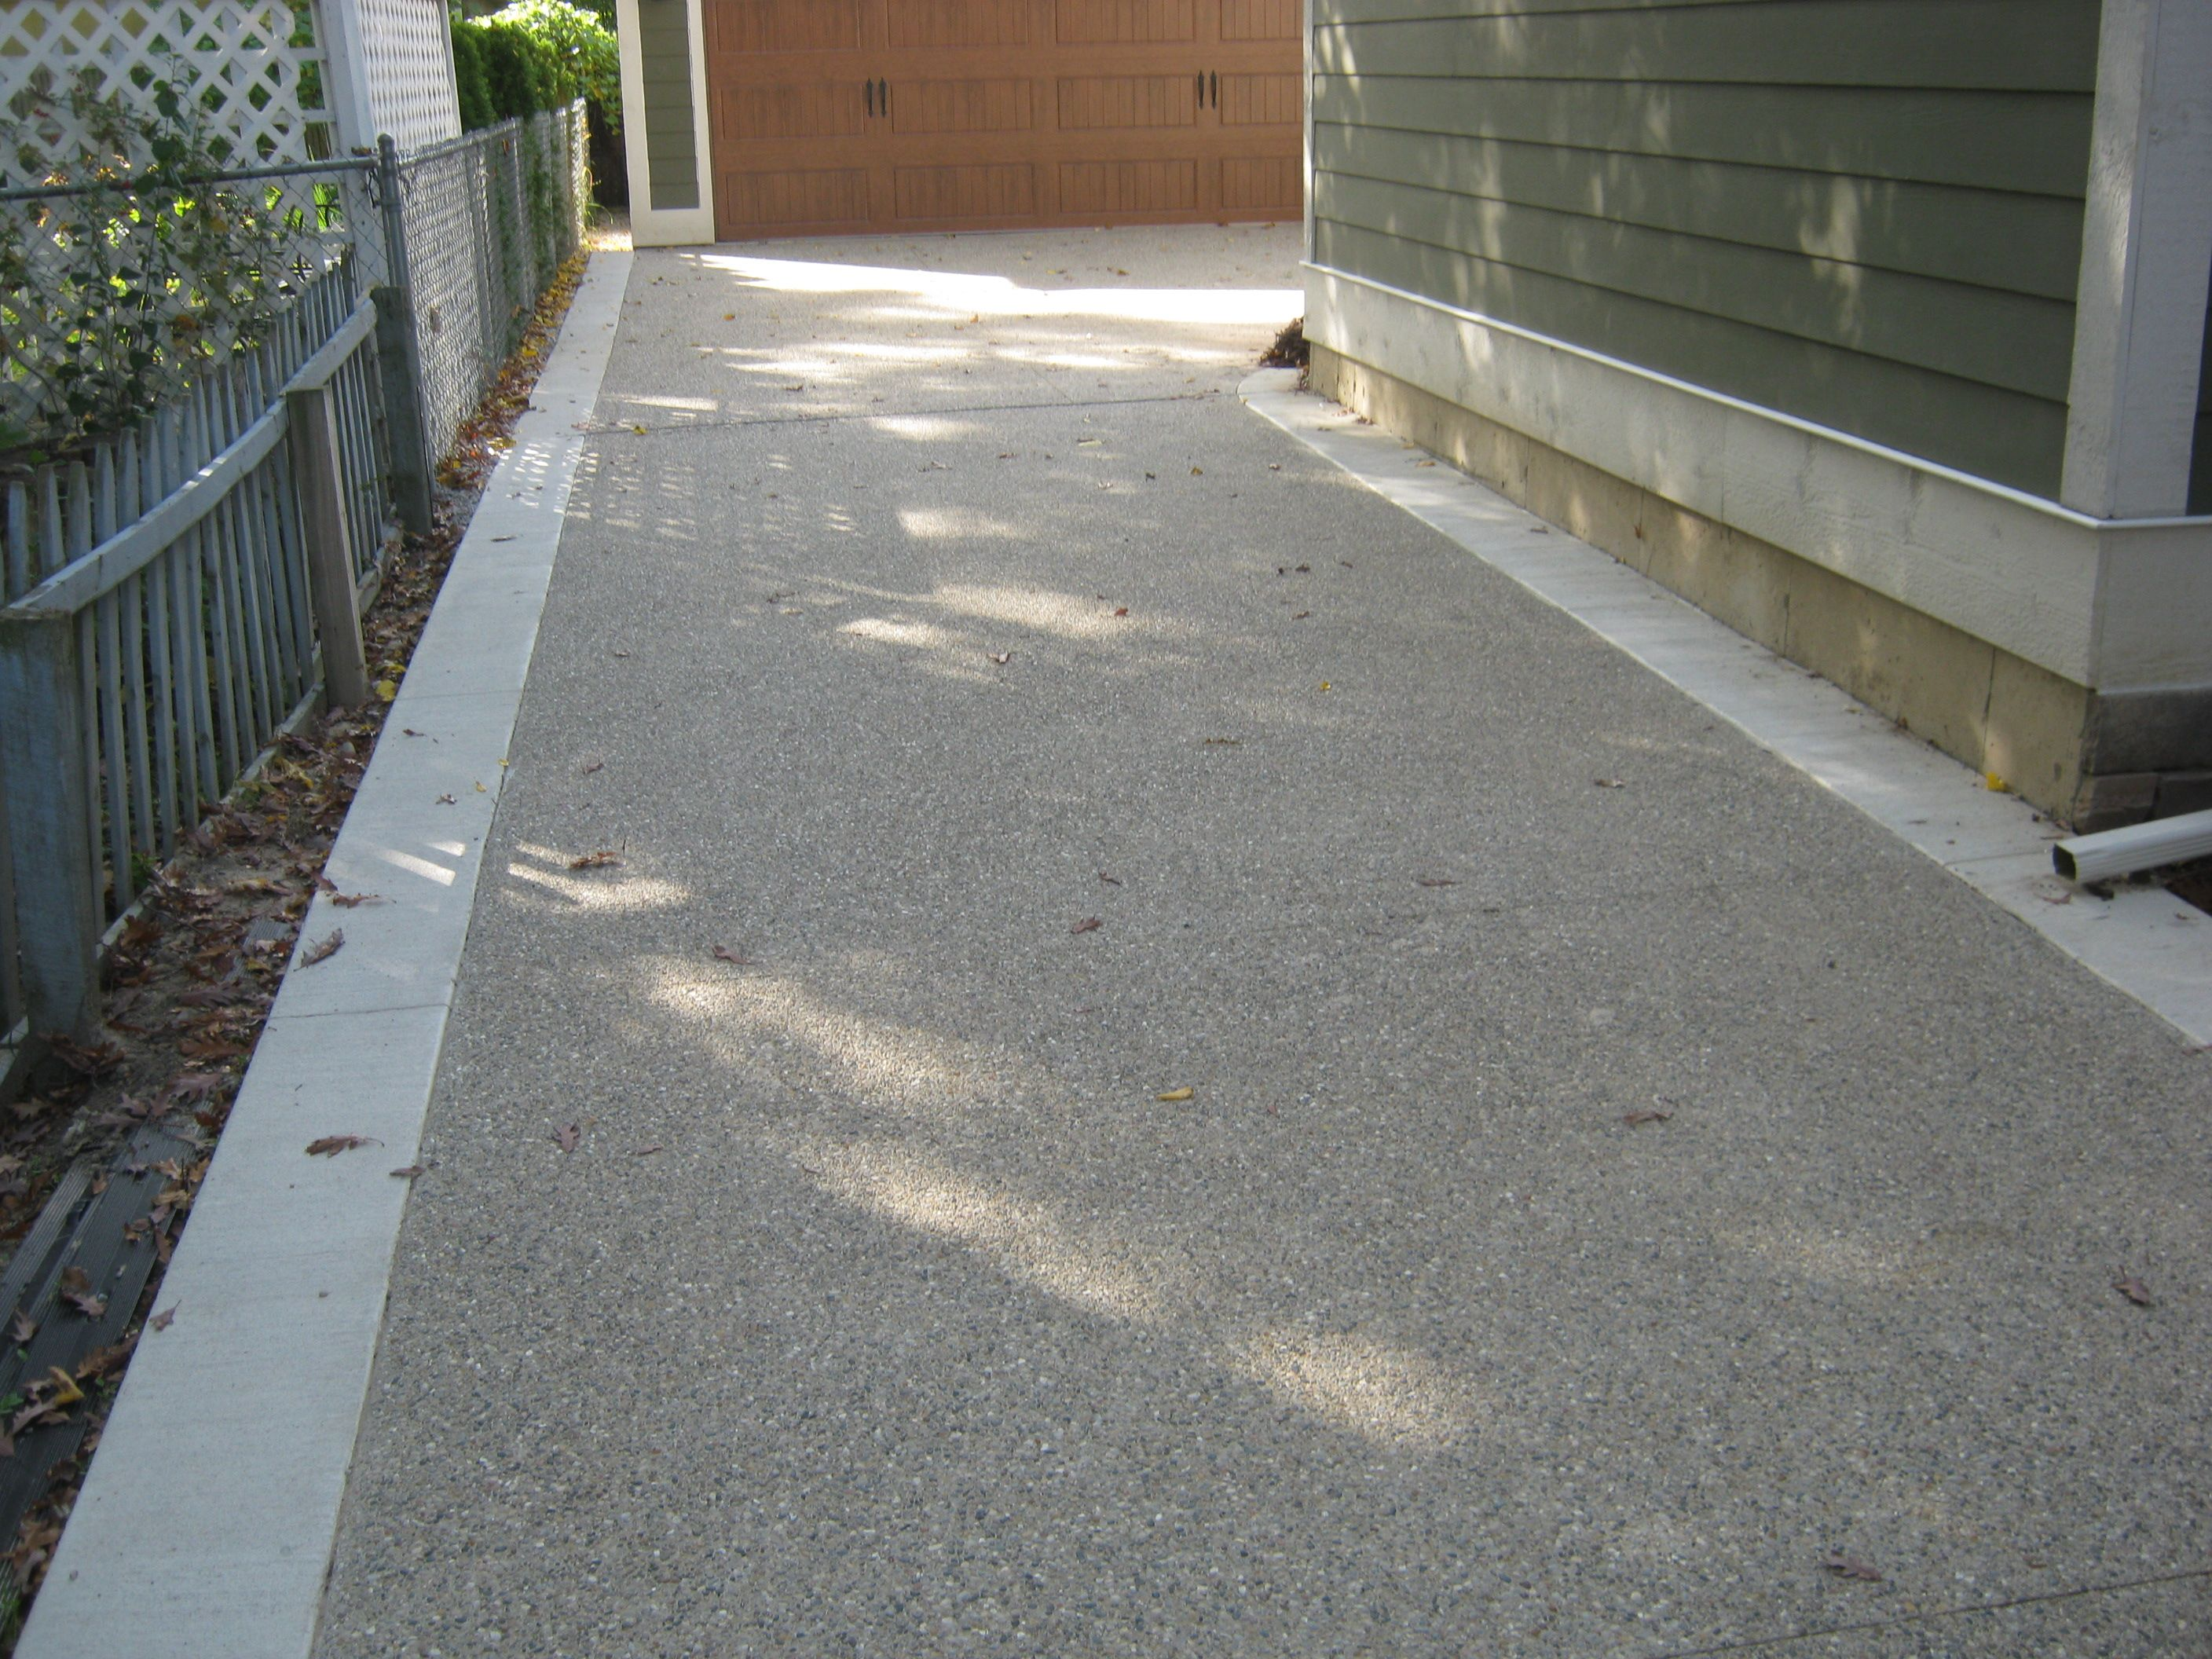 Exposed Aggregate Driveway With Regular Concrete Border Edging Asphalt Gravel